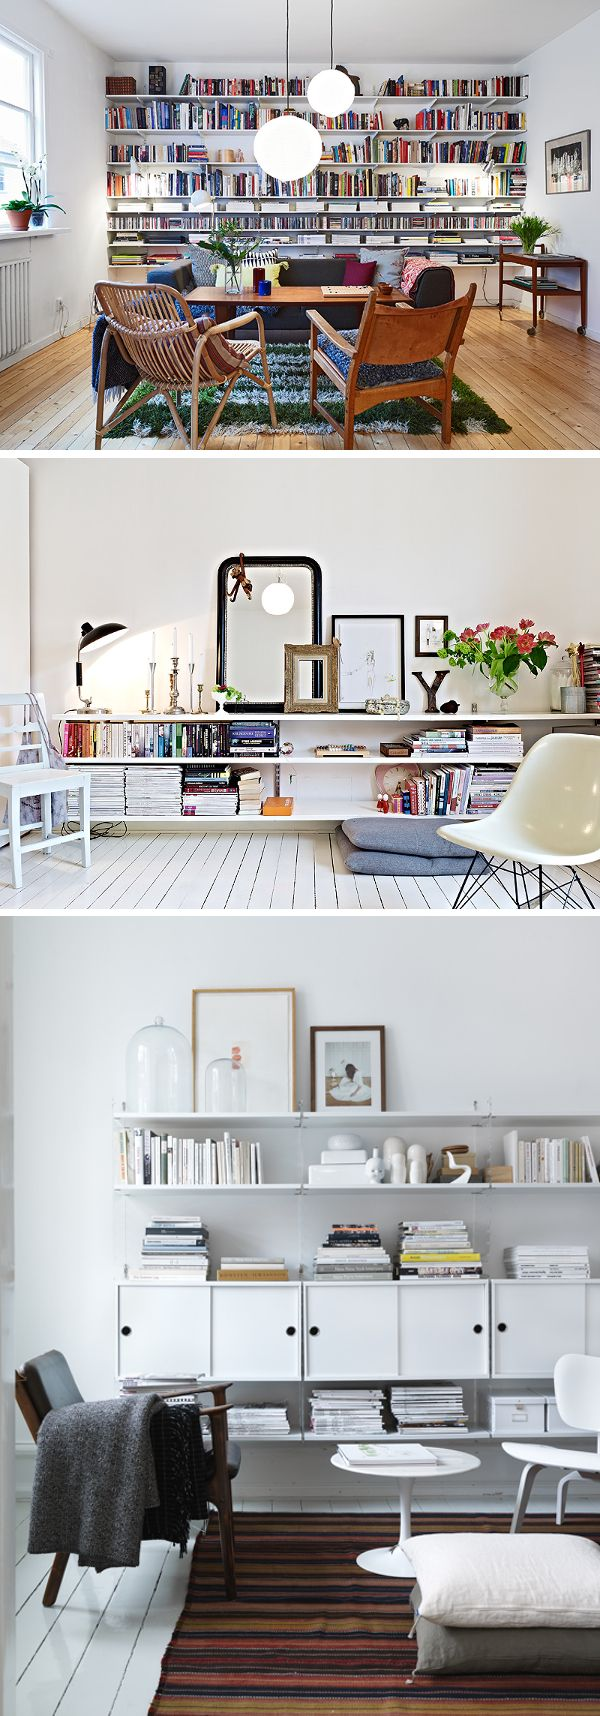 Love those wall shelves, esp the ones in the photos 2 and 3. Would work well in place of a credenza etc.